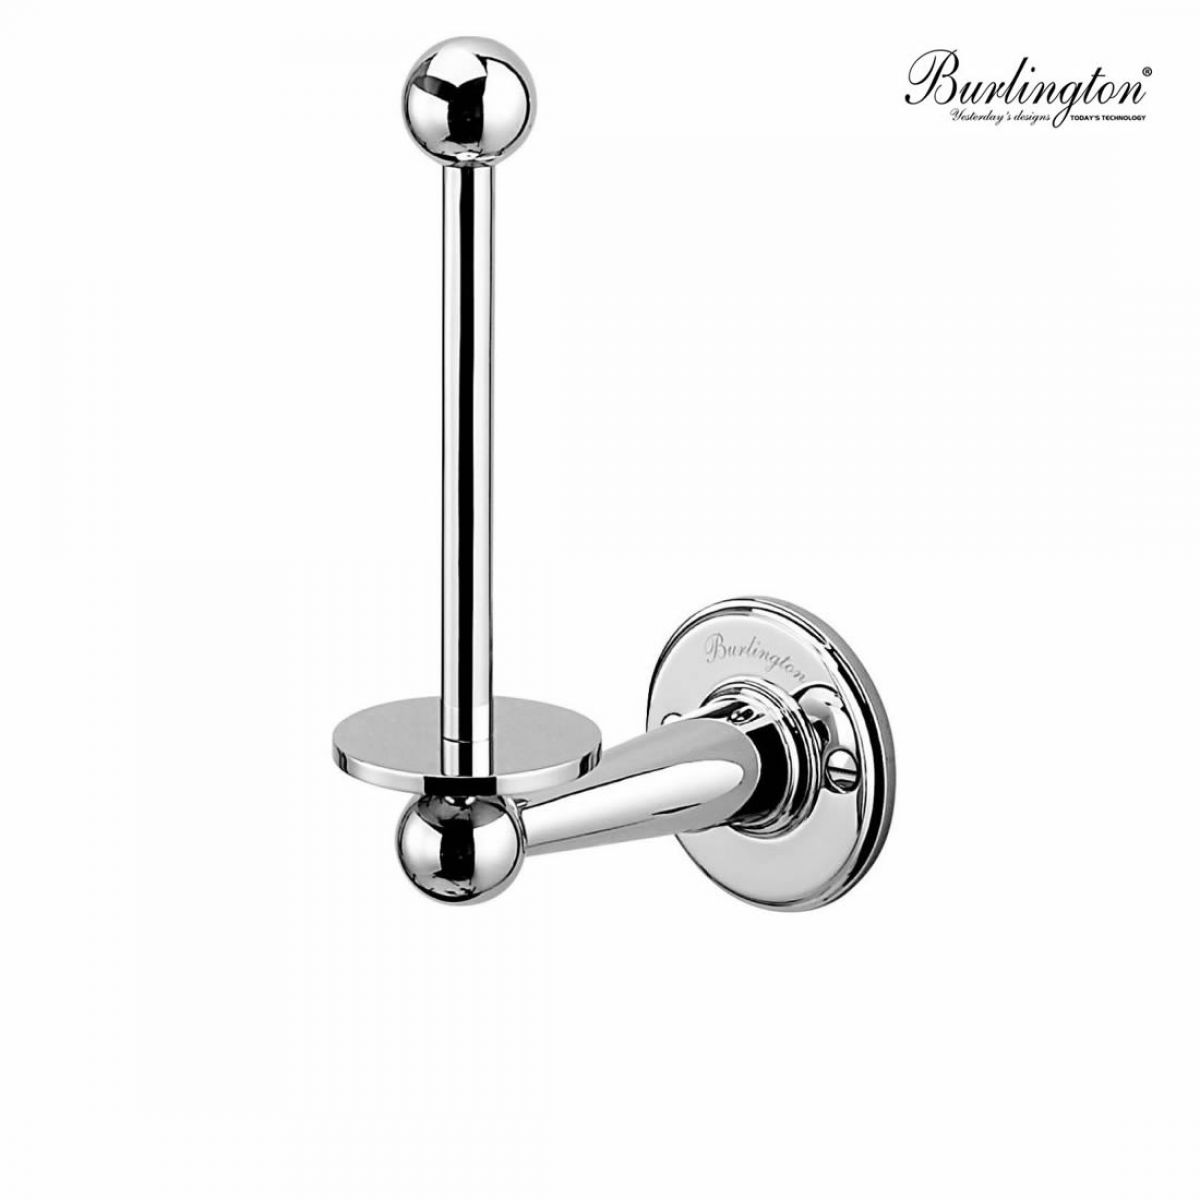 Burlington Spare Toilet Roll Holder